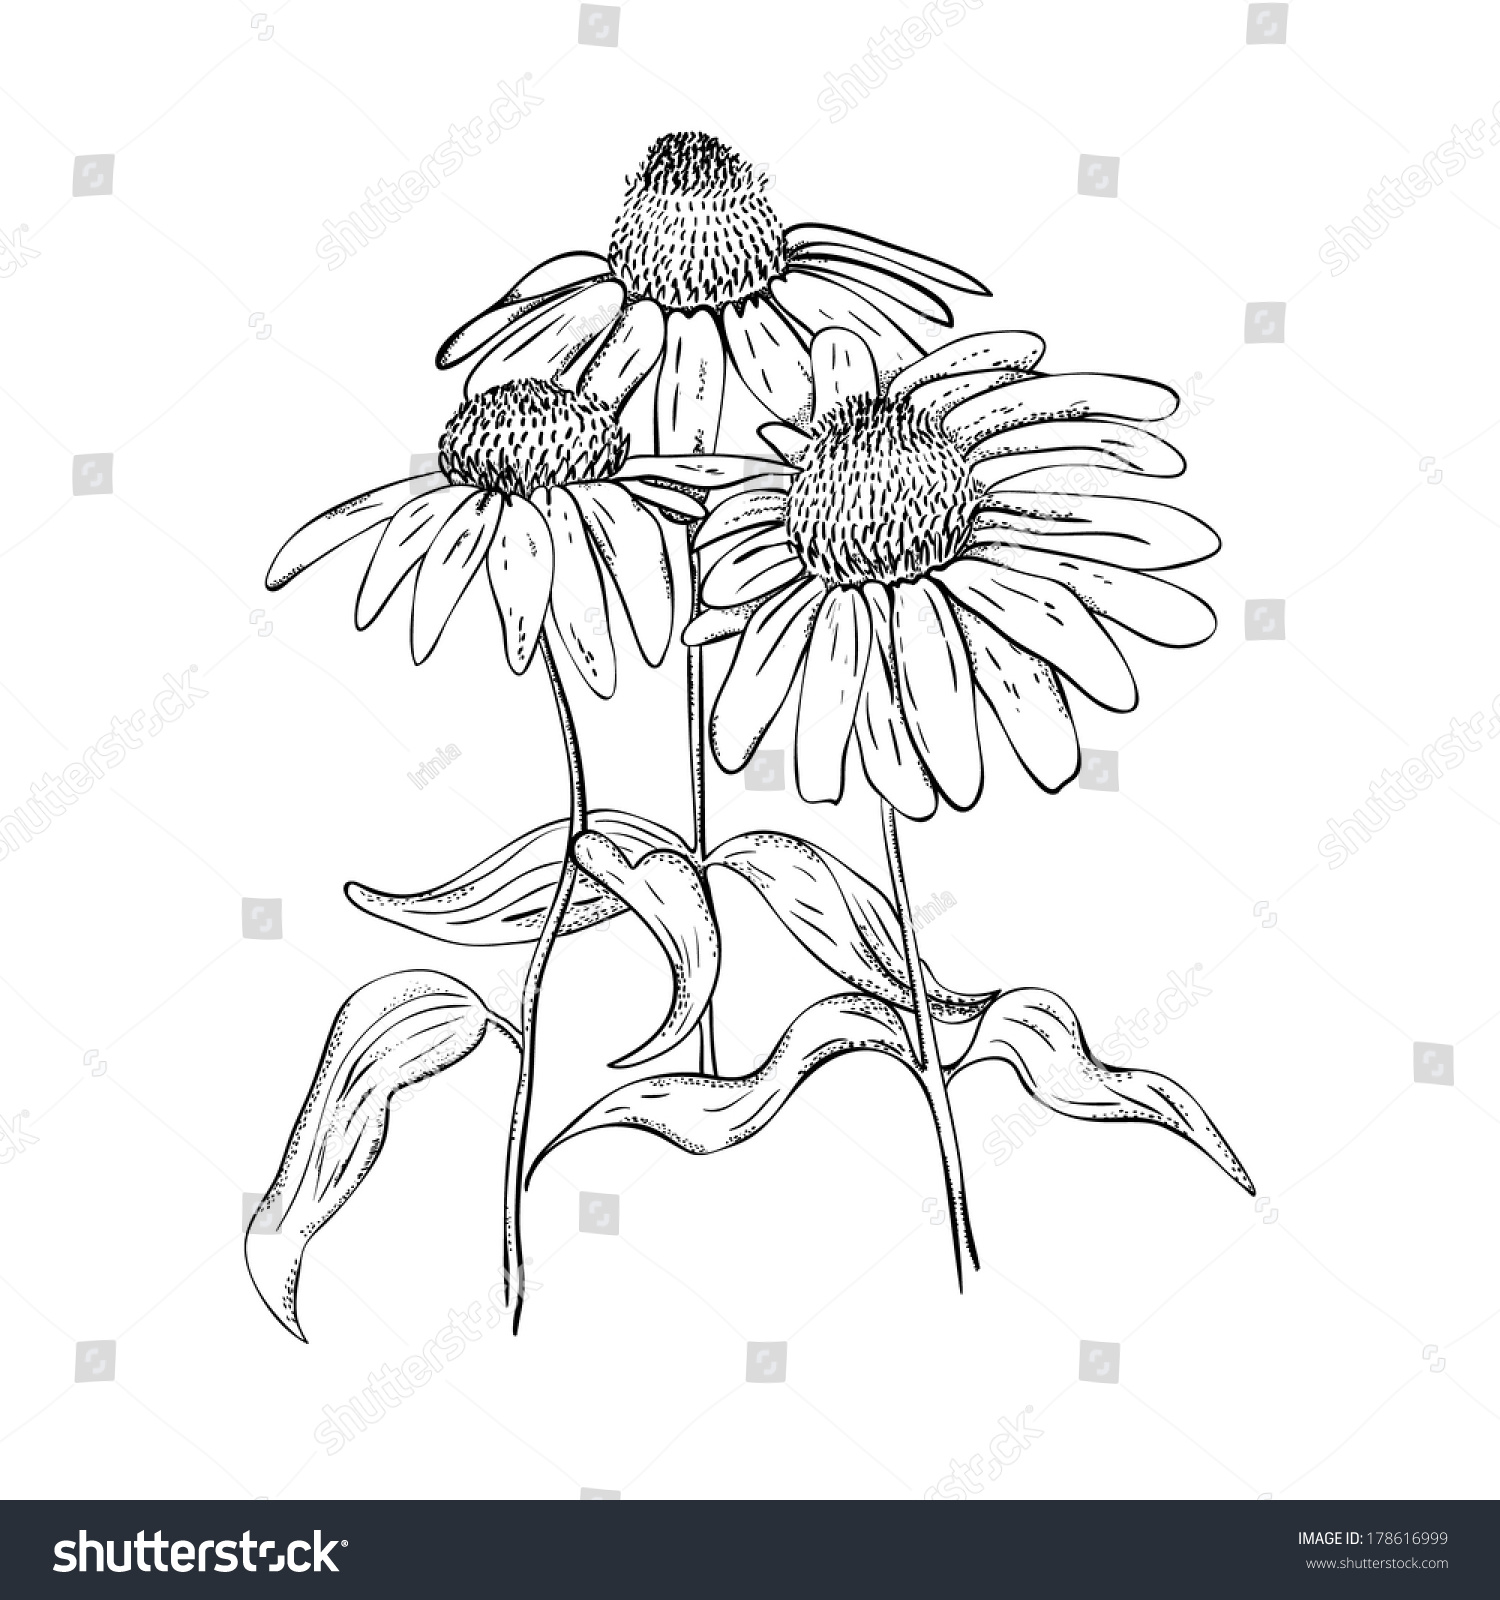 Line Drawing Coneflower : Monochrome drawing herb echinaceastyle line art stock